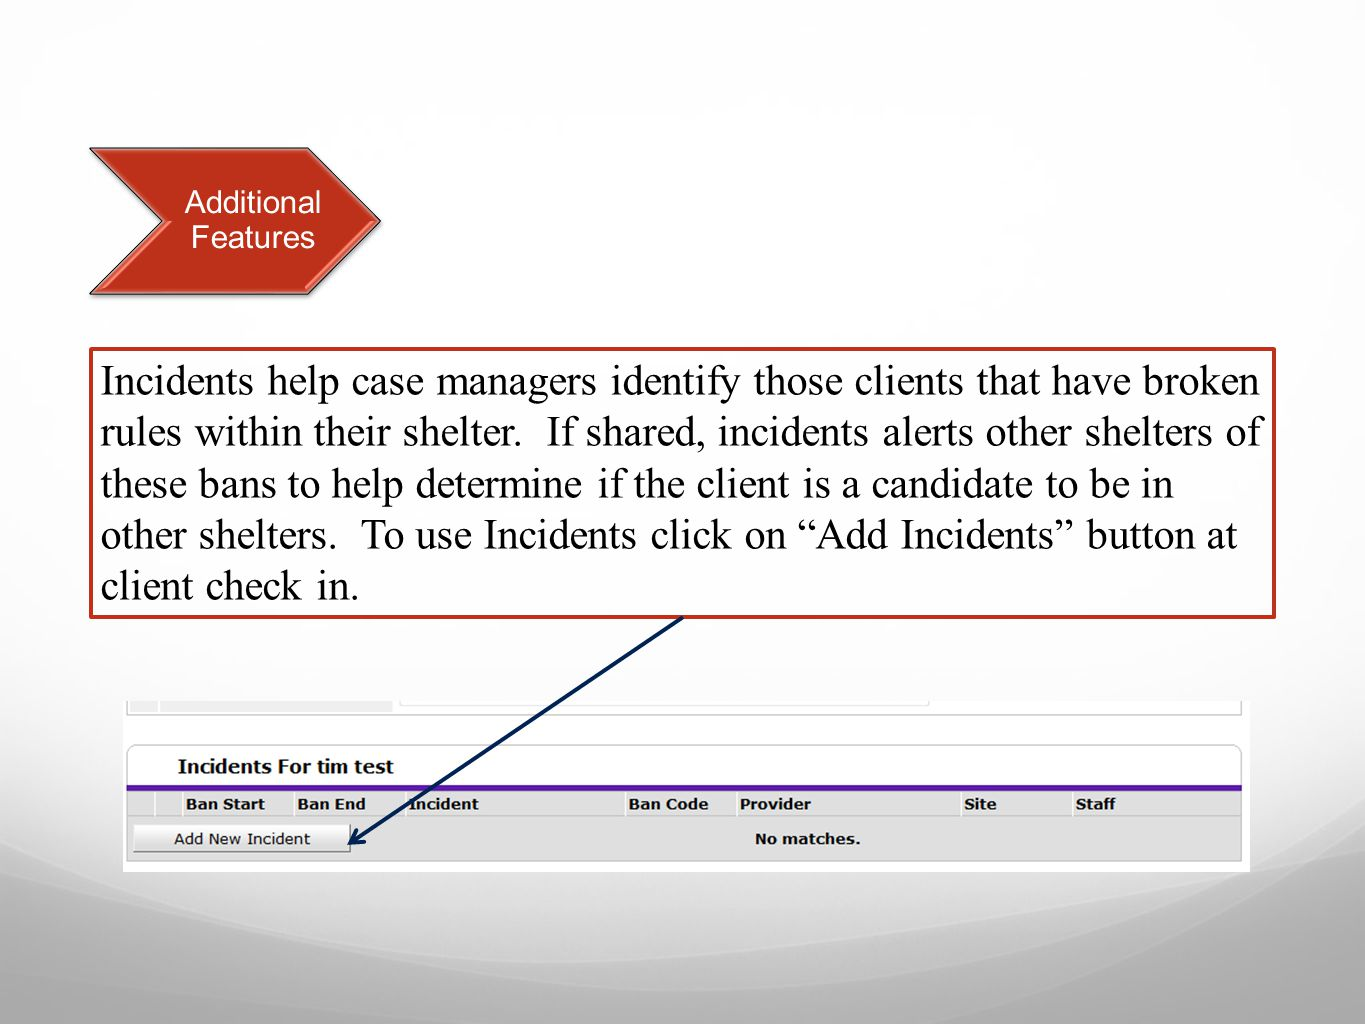 Incidents help case managers identify those clients that have broken rules within their shelter.